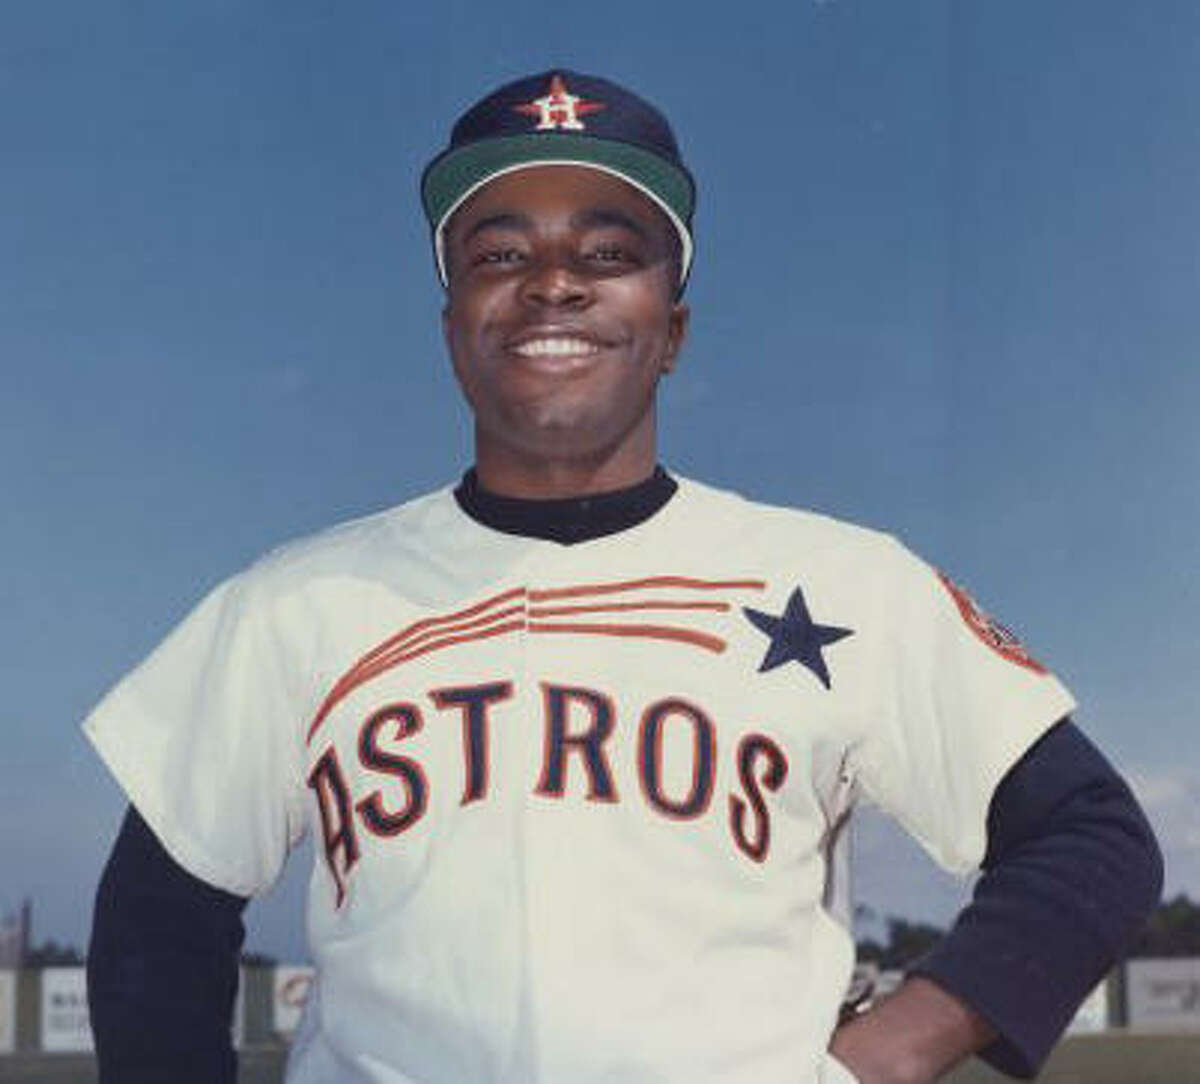 18 - Joe Morgan: The Hall of Famer was most well-known for his time with the Reds, when he was a two-time MVP. But Morgan started his career with the Astros and was a two-time All-Star in his nine years in Houston.